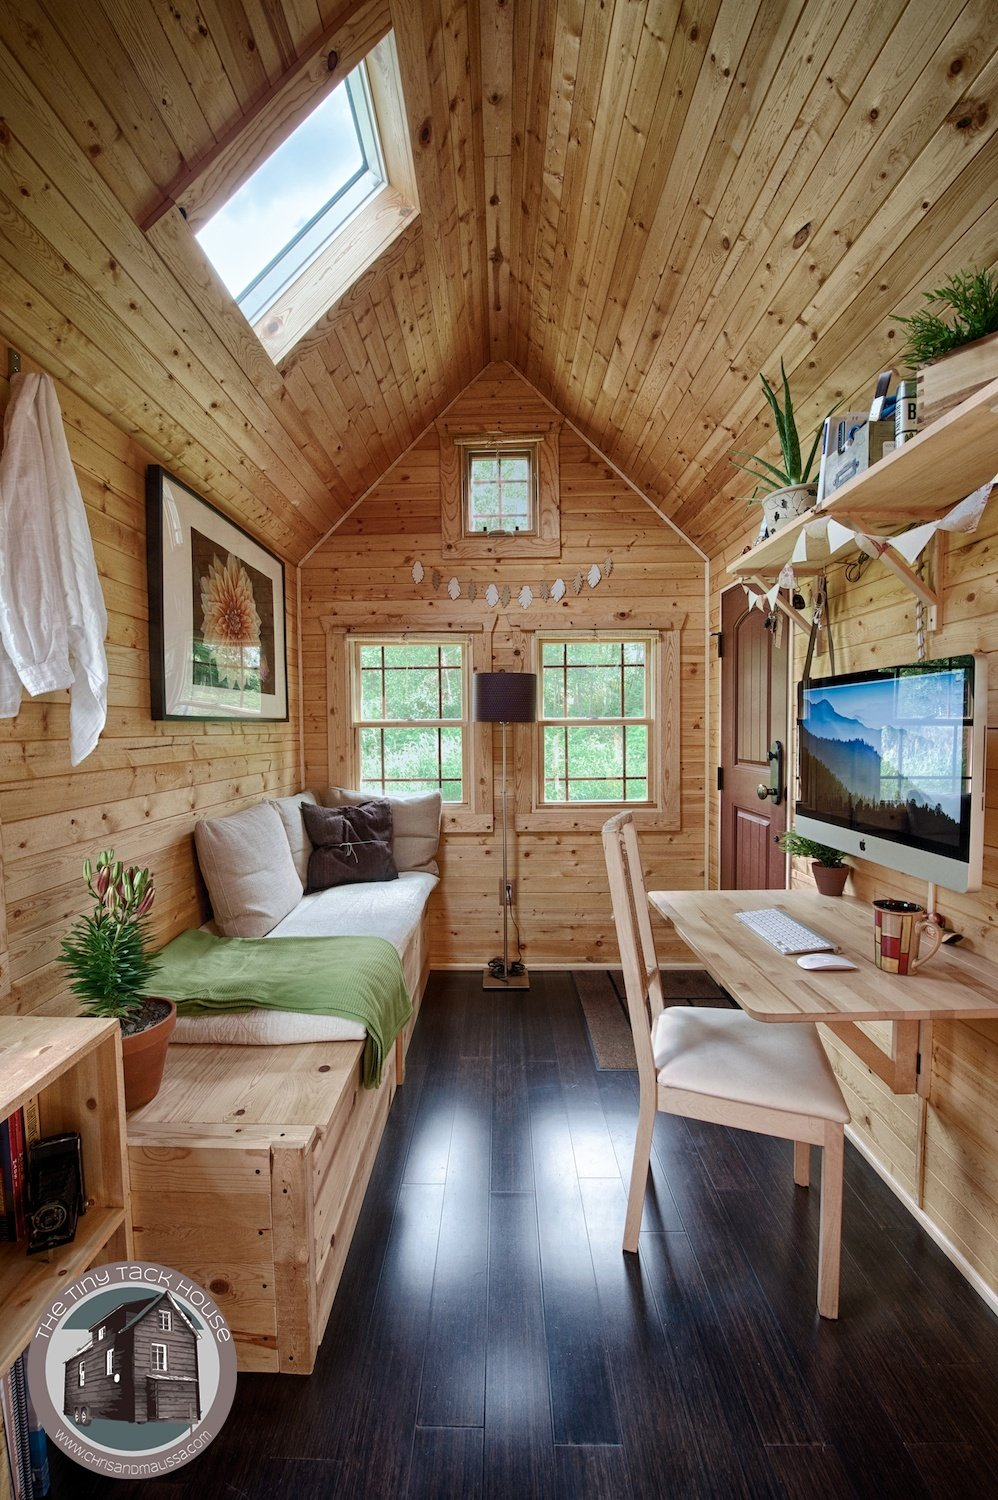 16 tiny houses you wish you could live in House design inside